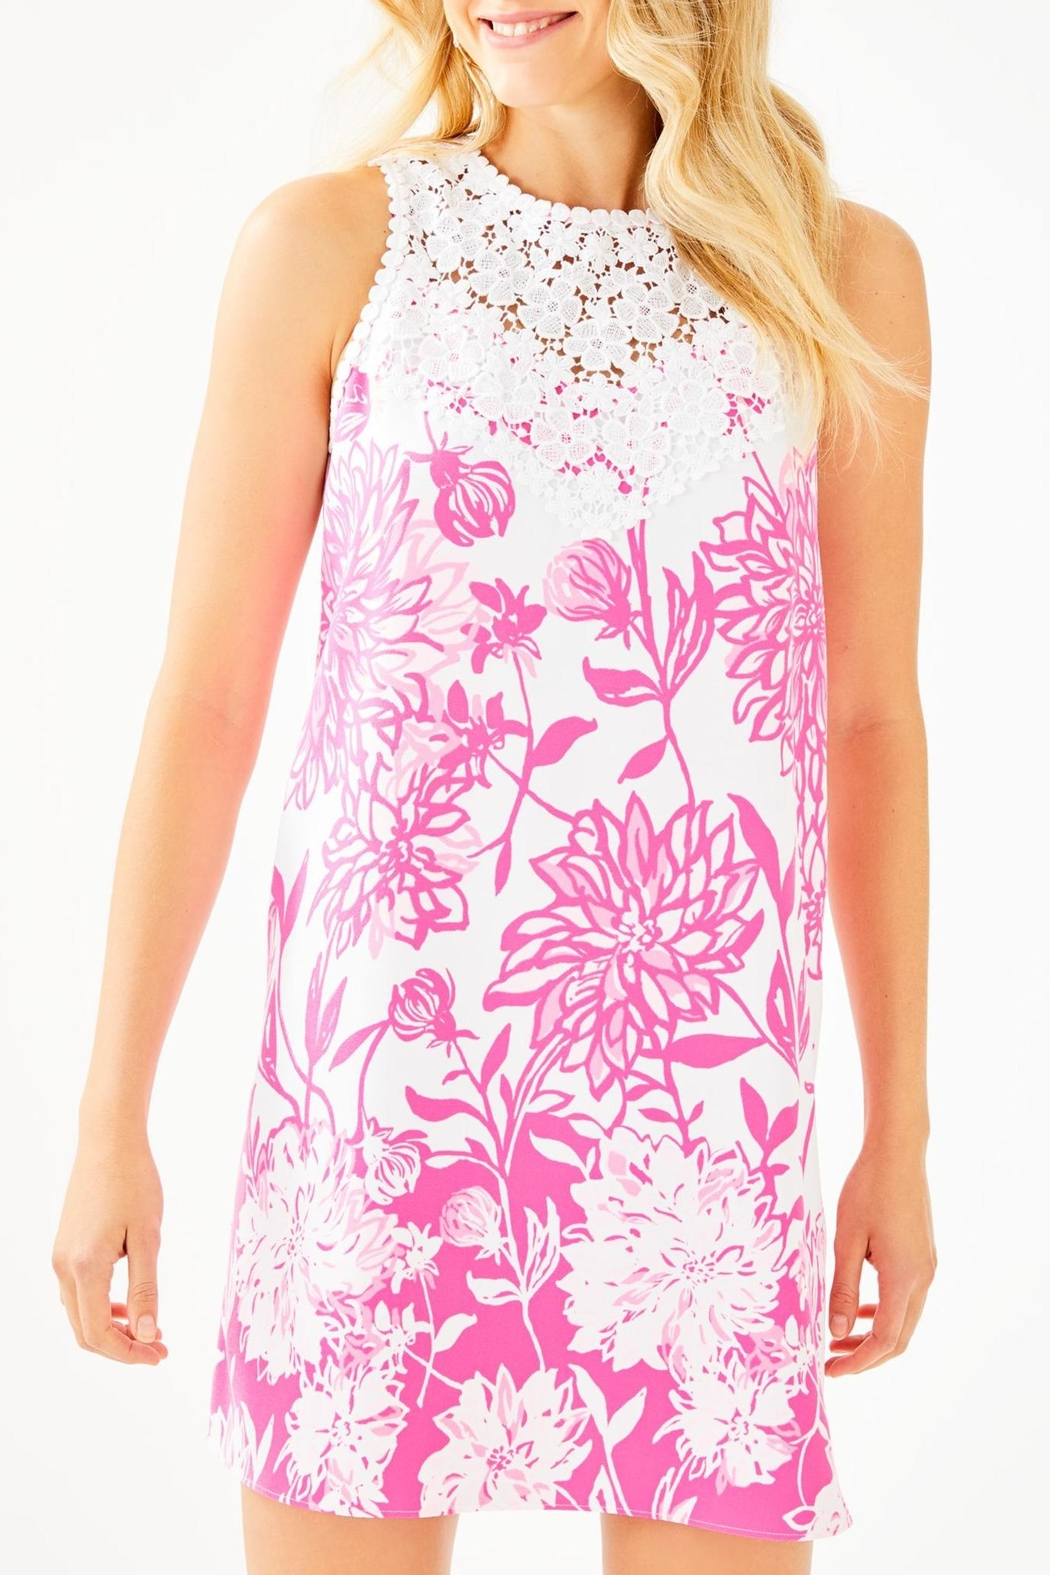 Lilly Pulitzer Nala Soft-Shift Dress - Main Image